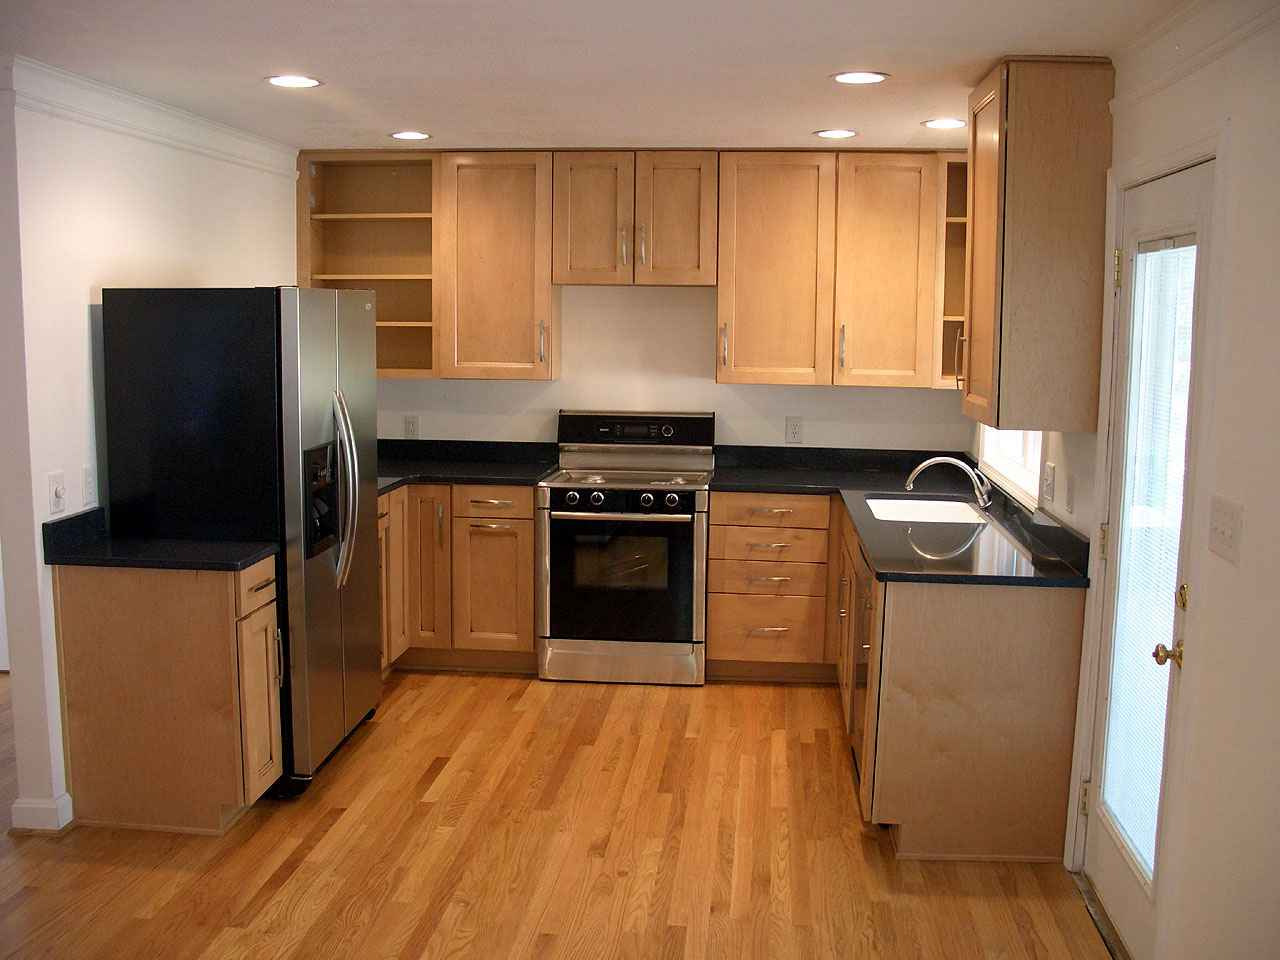 Cheap cabinets for kitchens shopping tips for Kitchen cabinets sets